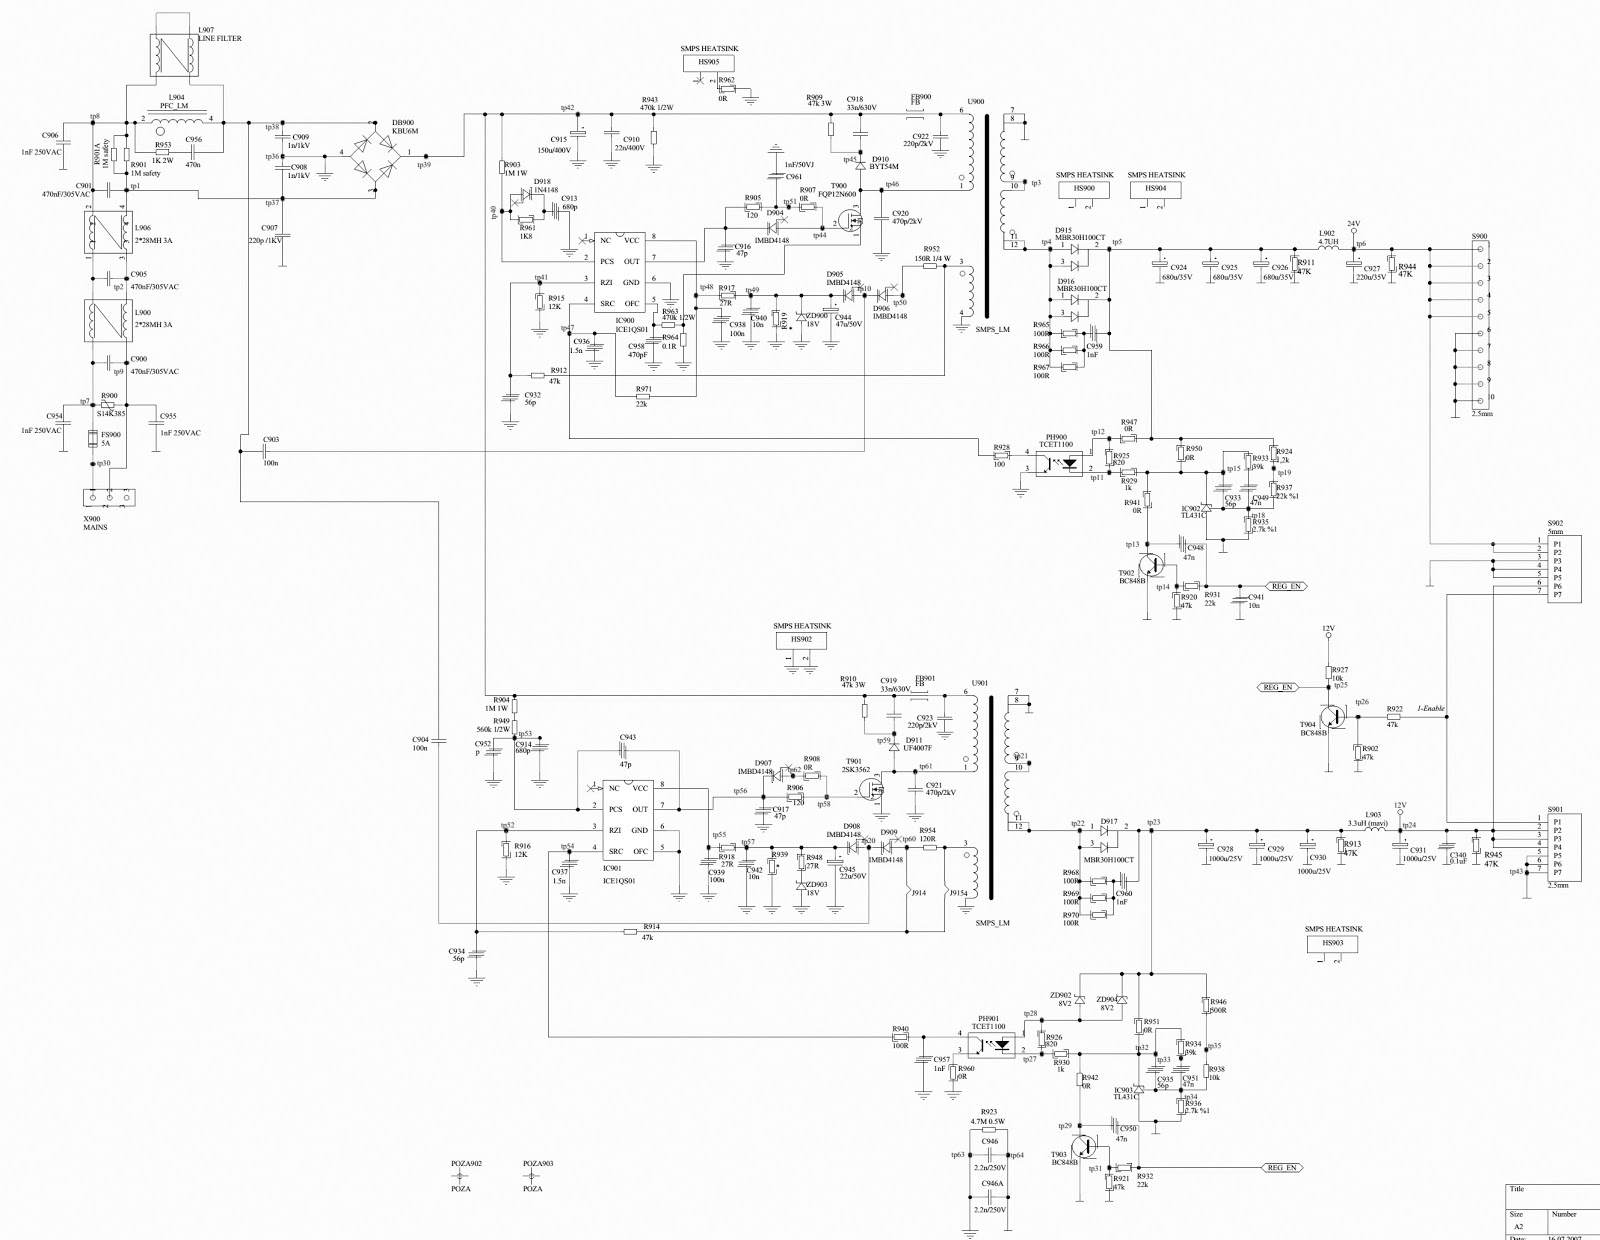 Beko Z1j194 11 And Dynex Lc22hv40 Smps Circuit Diagram